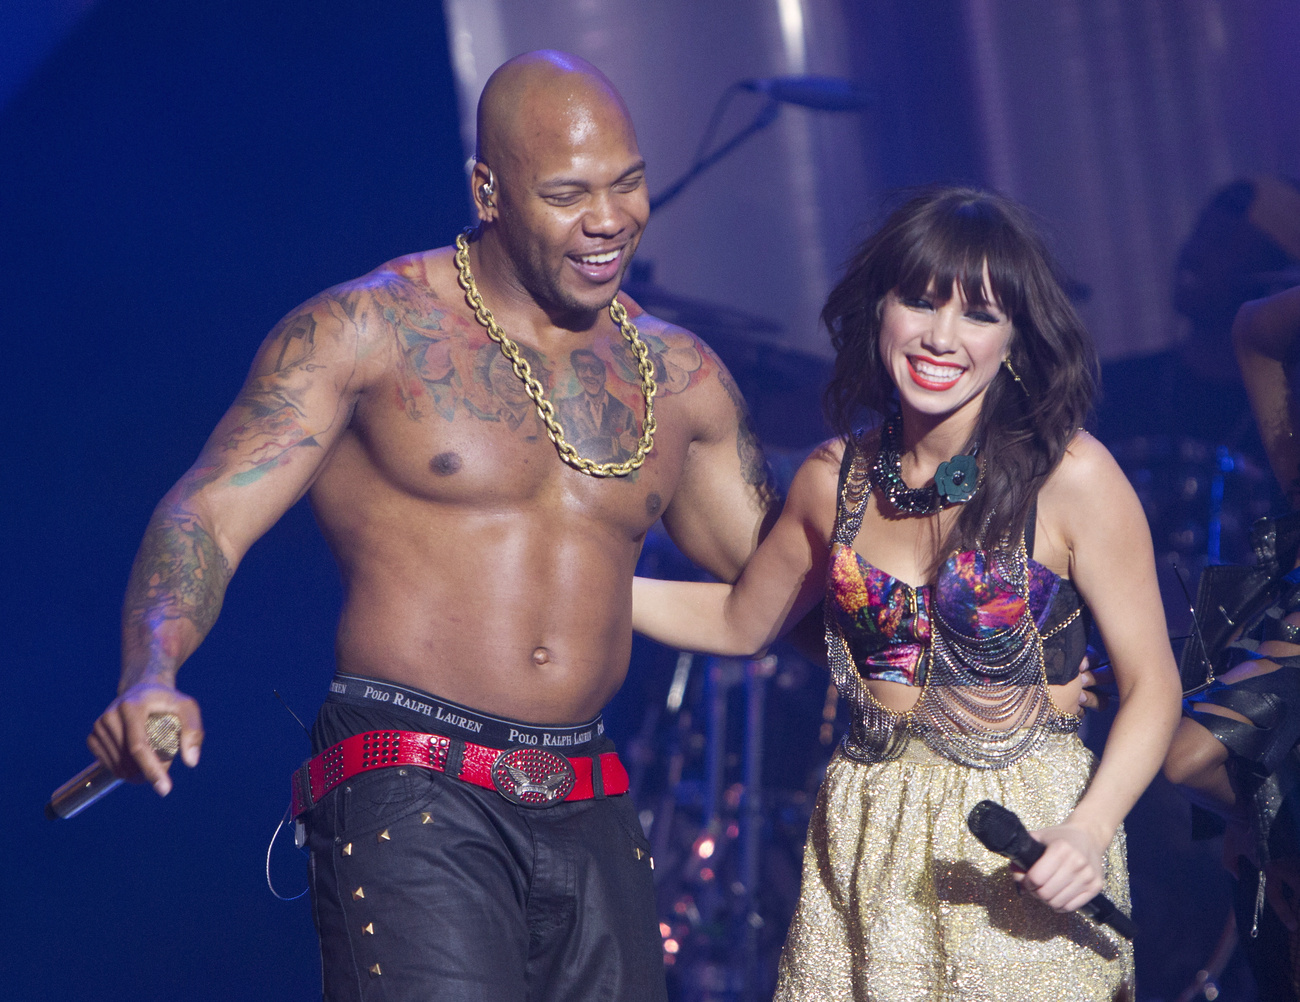 Flo Rida és Carly Rae Jepsen a Much Music Video Awards nevű díjkiosztón